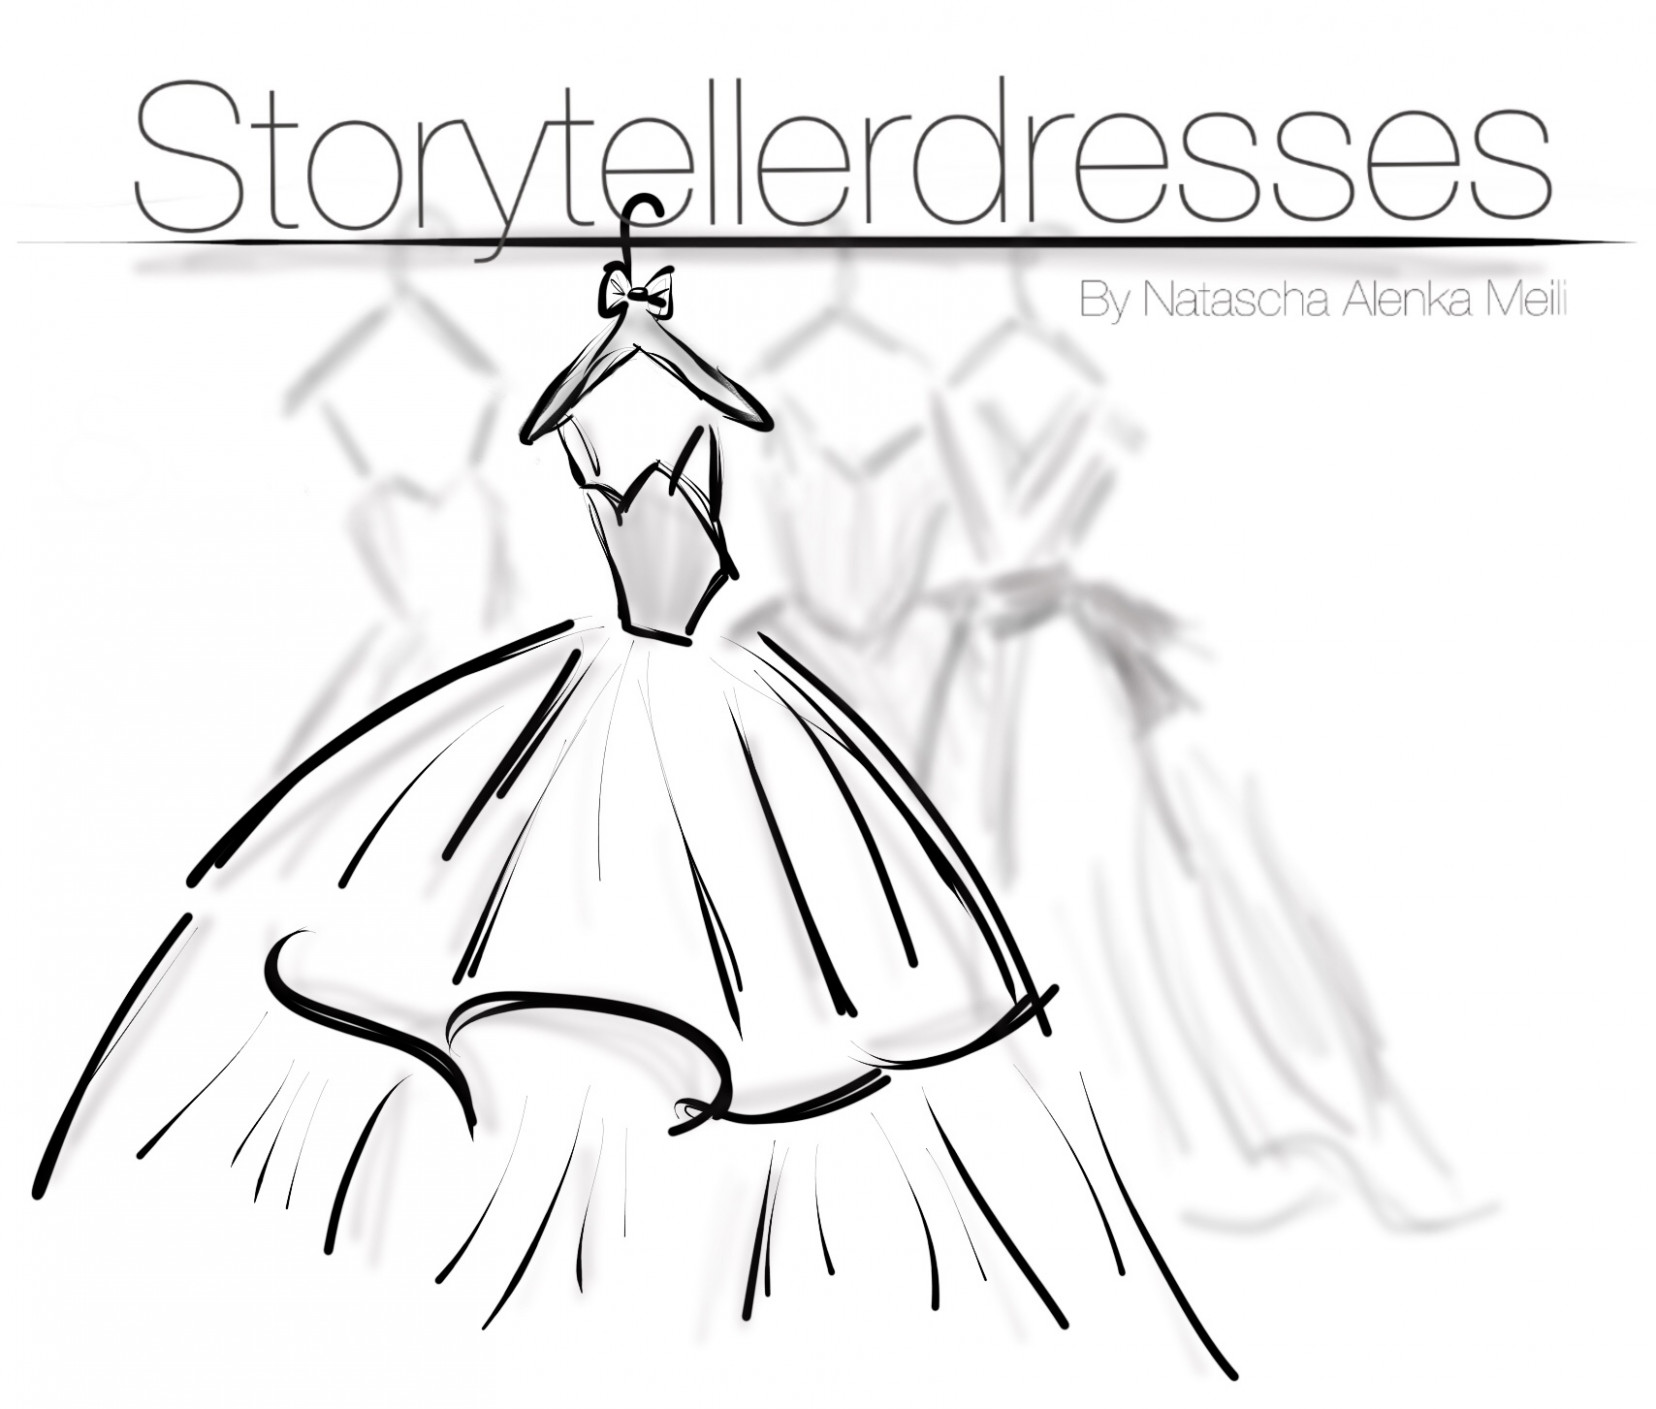 storytellerdresses storytellerdresses